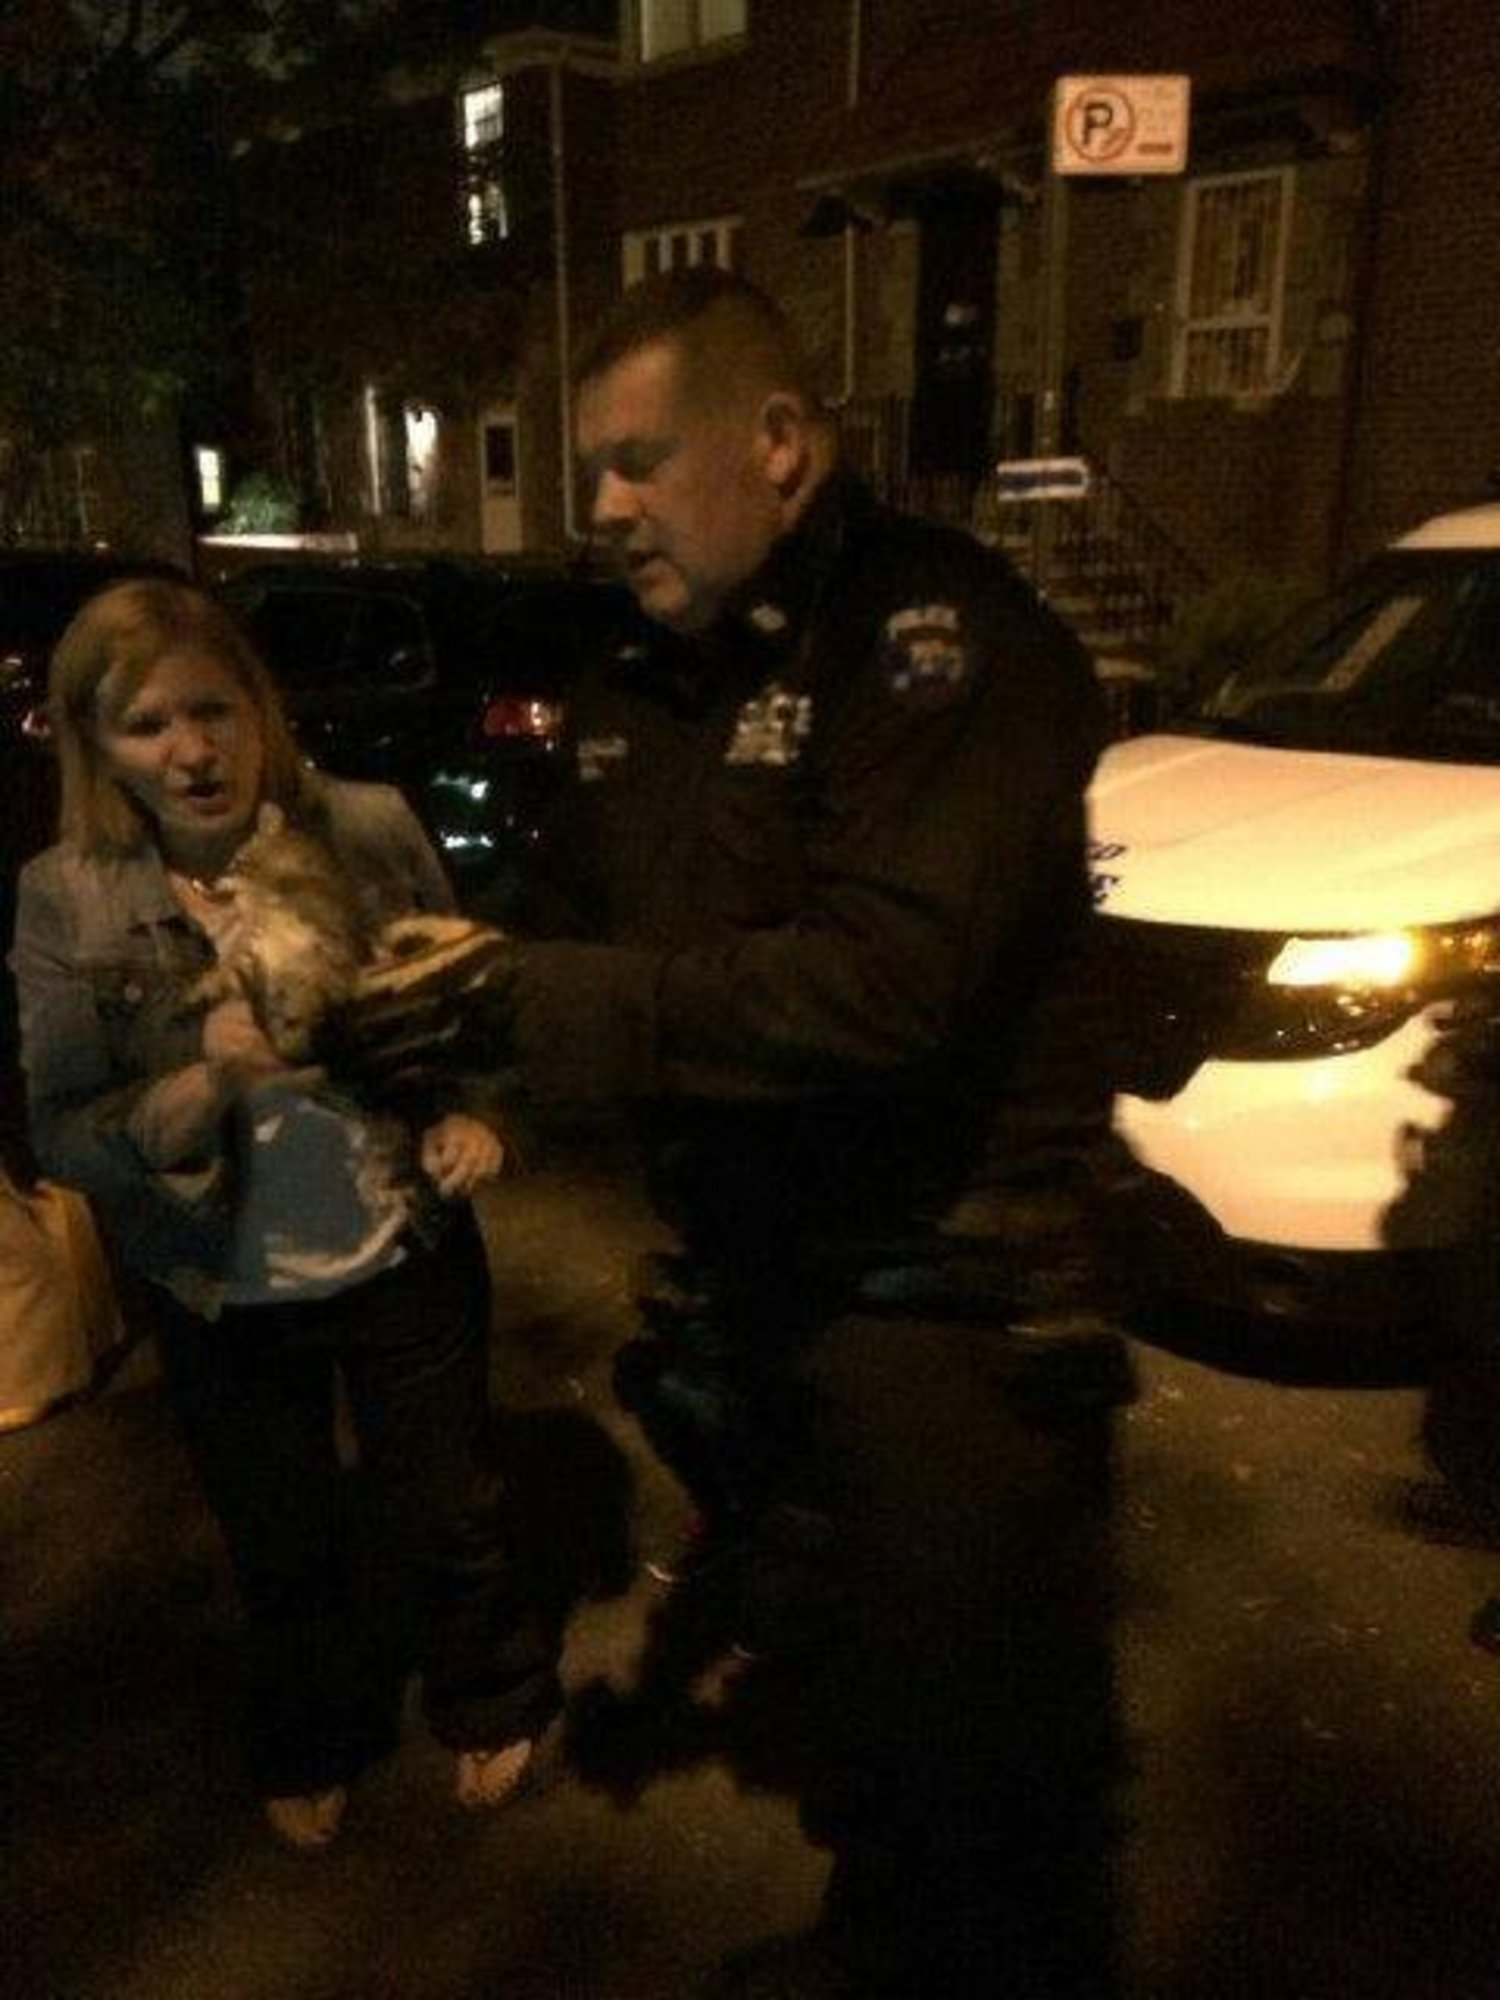 Another kitty rescue in the #112pct Thanks to ESU for their assistance http://t.co/oEeo0akhWj